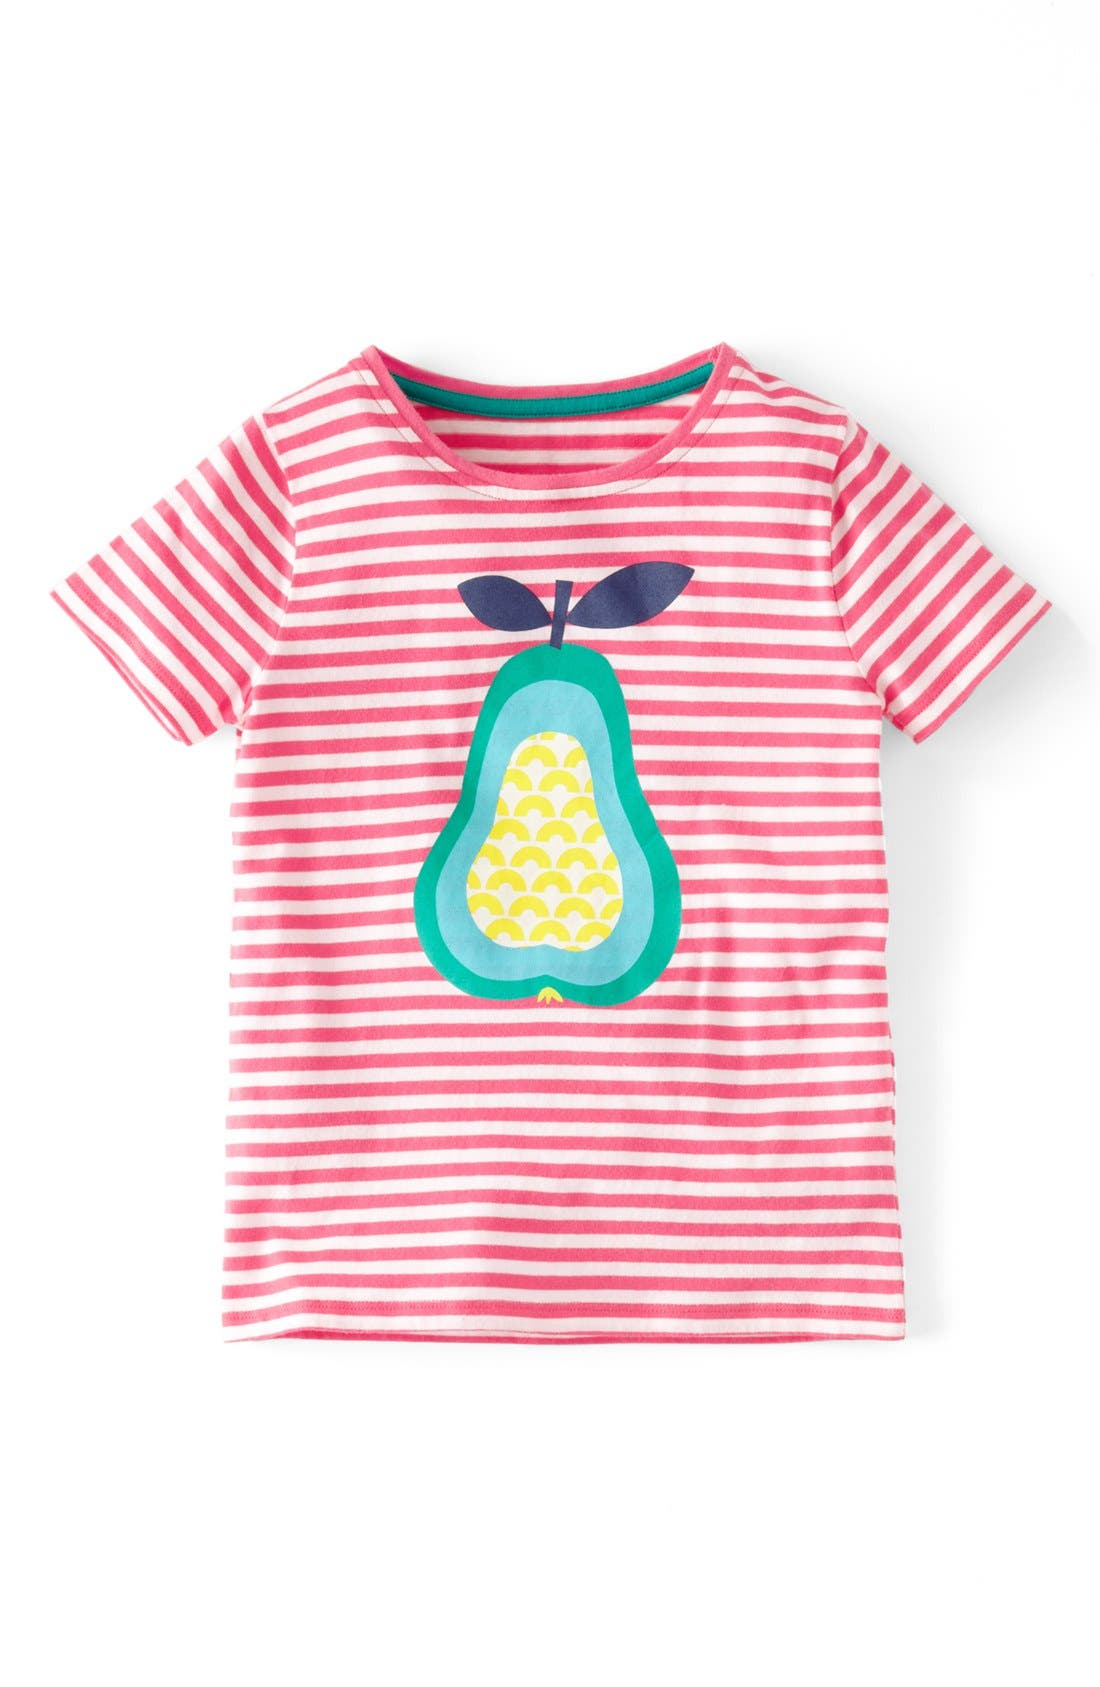 Alternate Image 1 Selected - Mini Boden 'Retro' Print Tee (Toddler Girls, Little Girls & Big Girls)(Online Only)